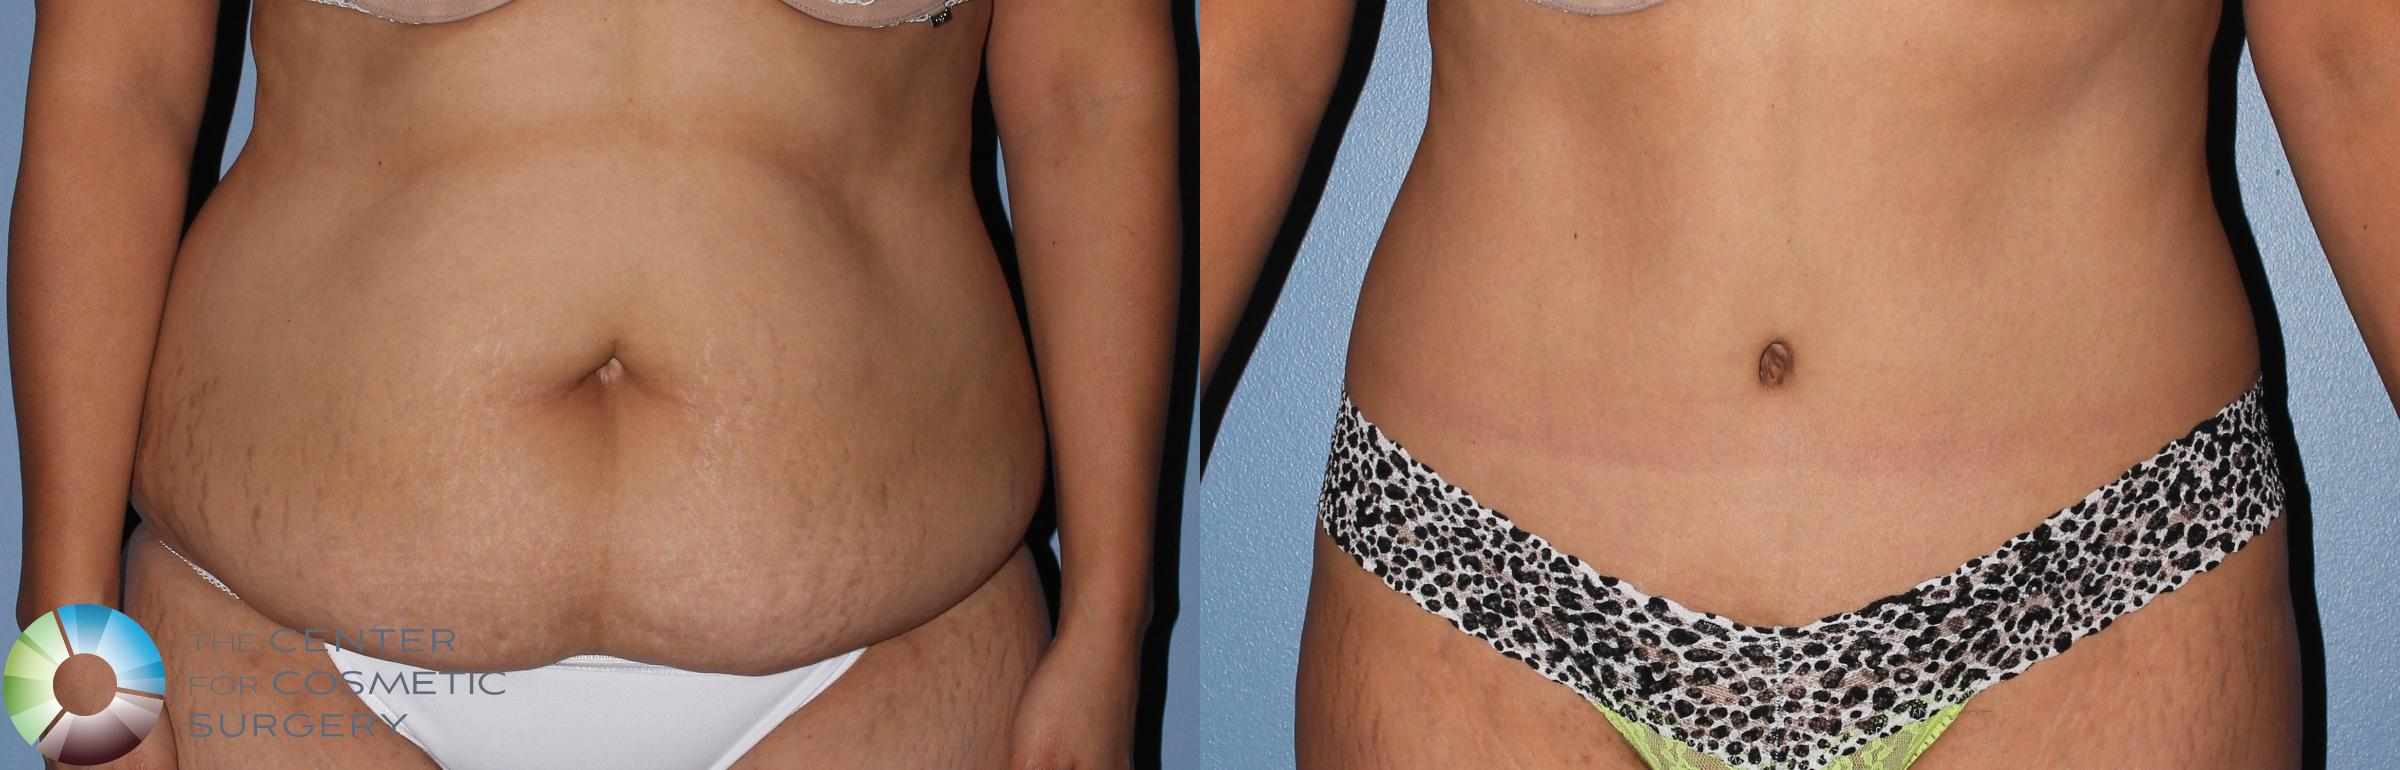 Tummy Tuck Case 798 Before & After View #3 | Golden, CO | The Center for Cosmetic Surgery